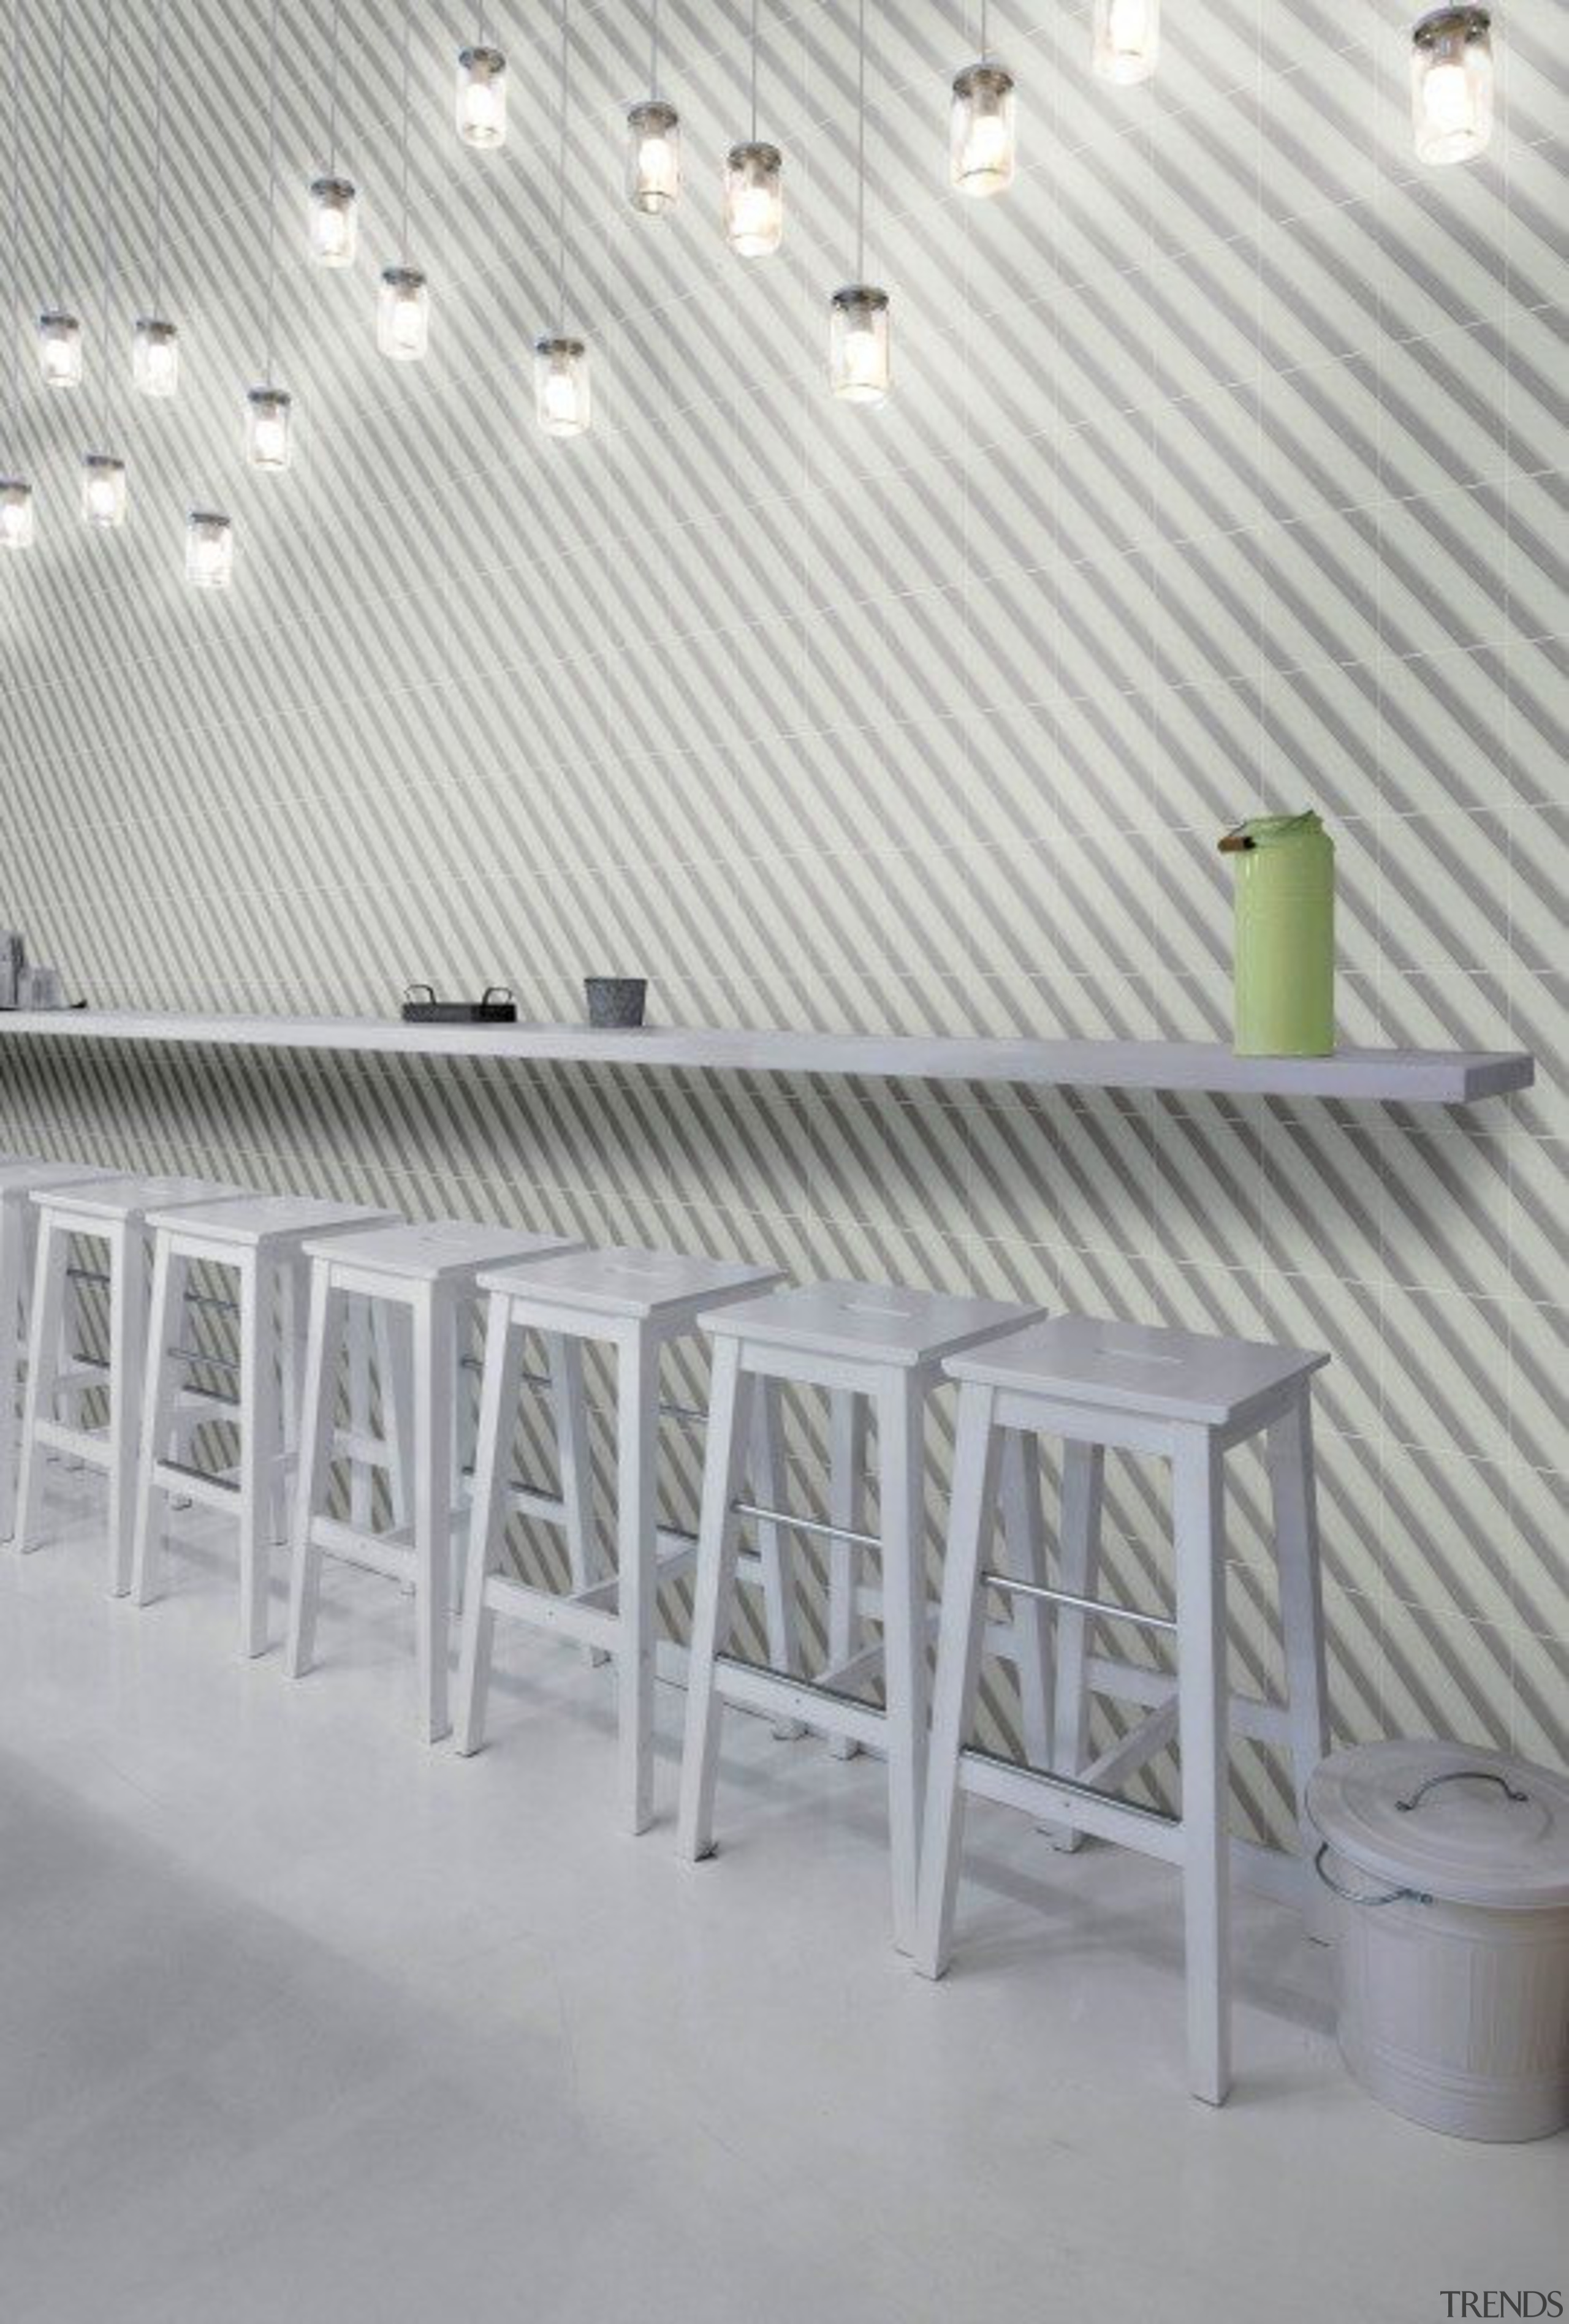 Ambient Touch - Ambient Touch - architecture | architecture, ceiling, daylighting, floor, furniture, line, product design, roof, structure, table, wall, gray